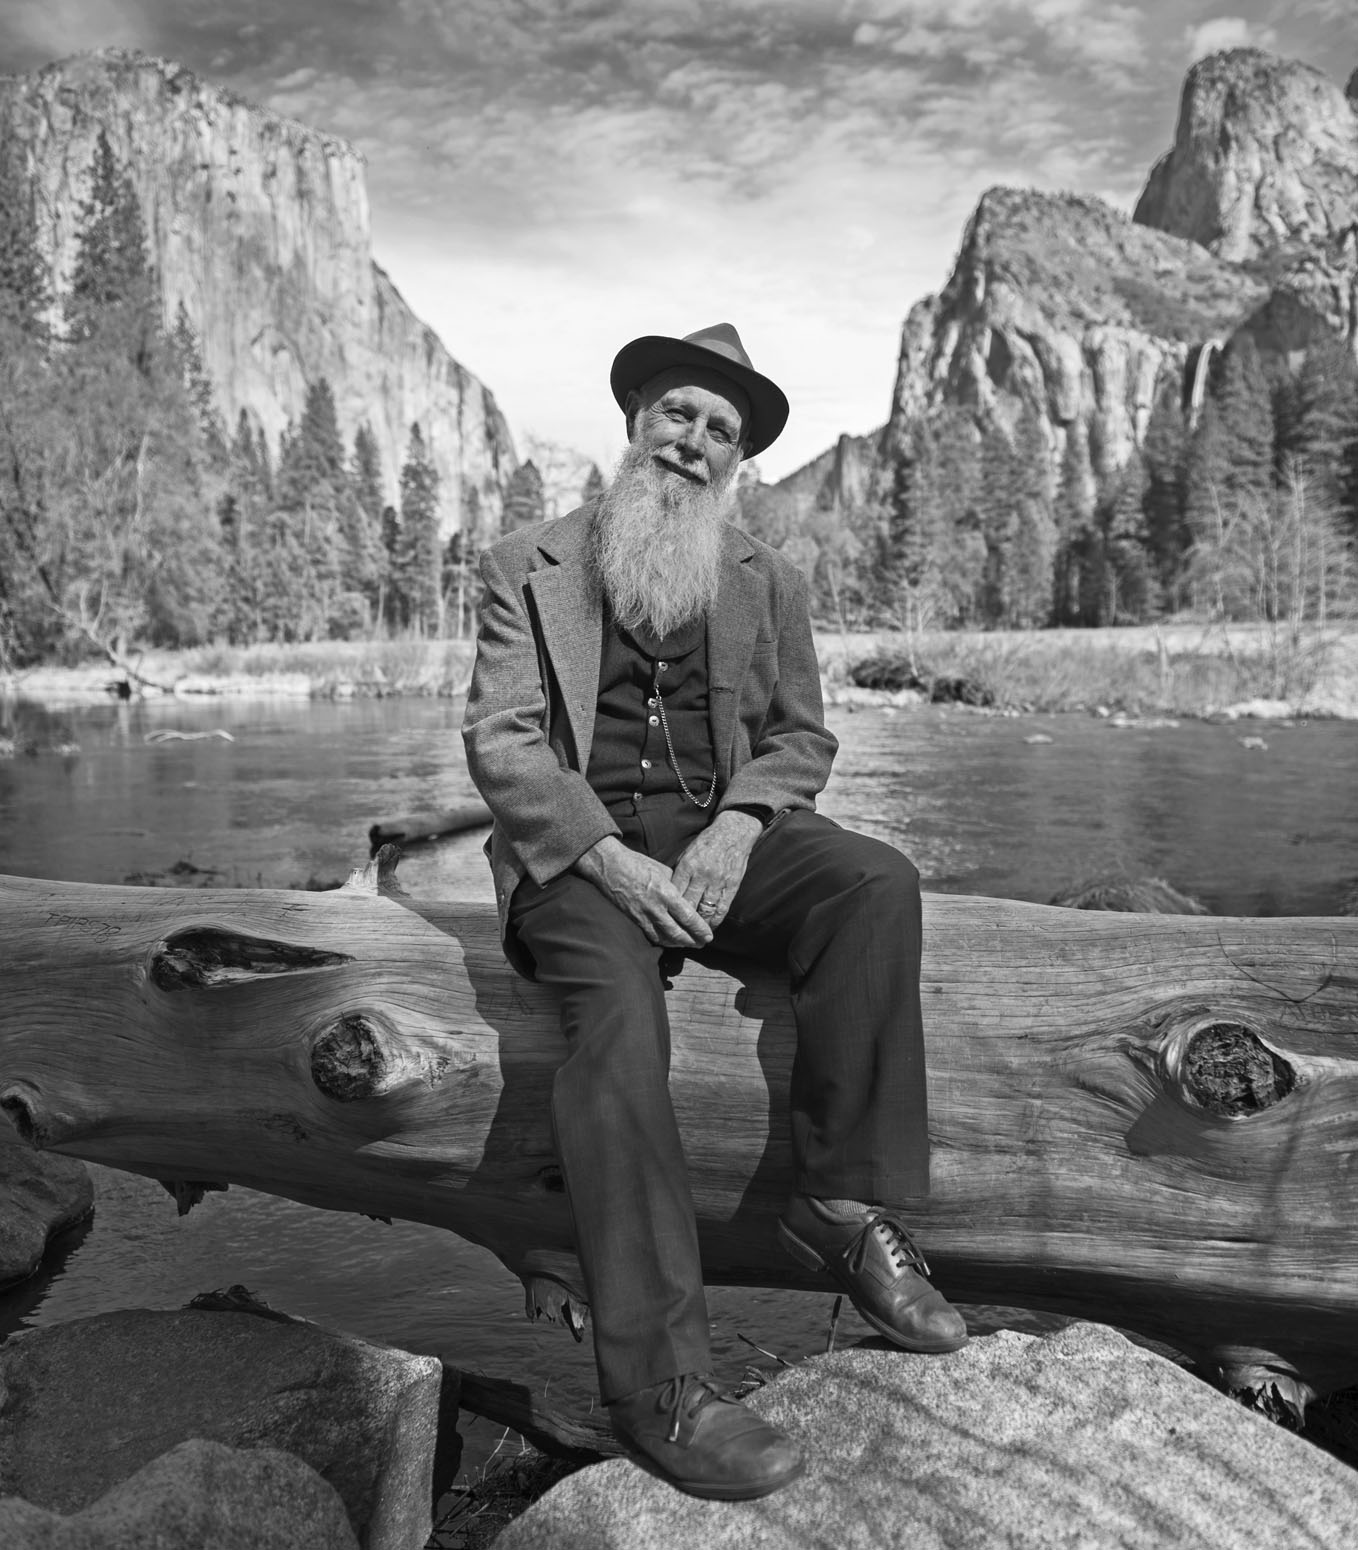 Lee Stetson has portrayed John Muir for 32 years.